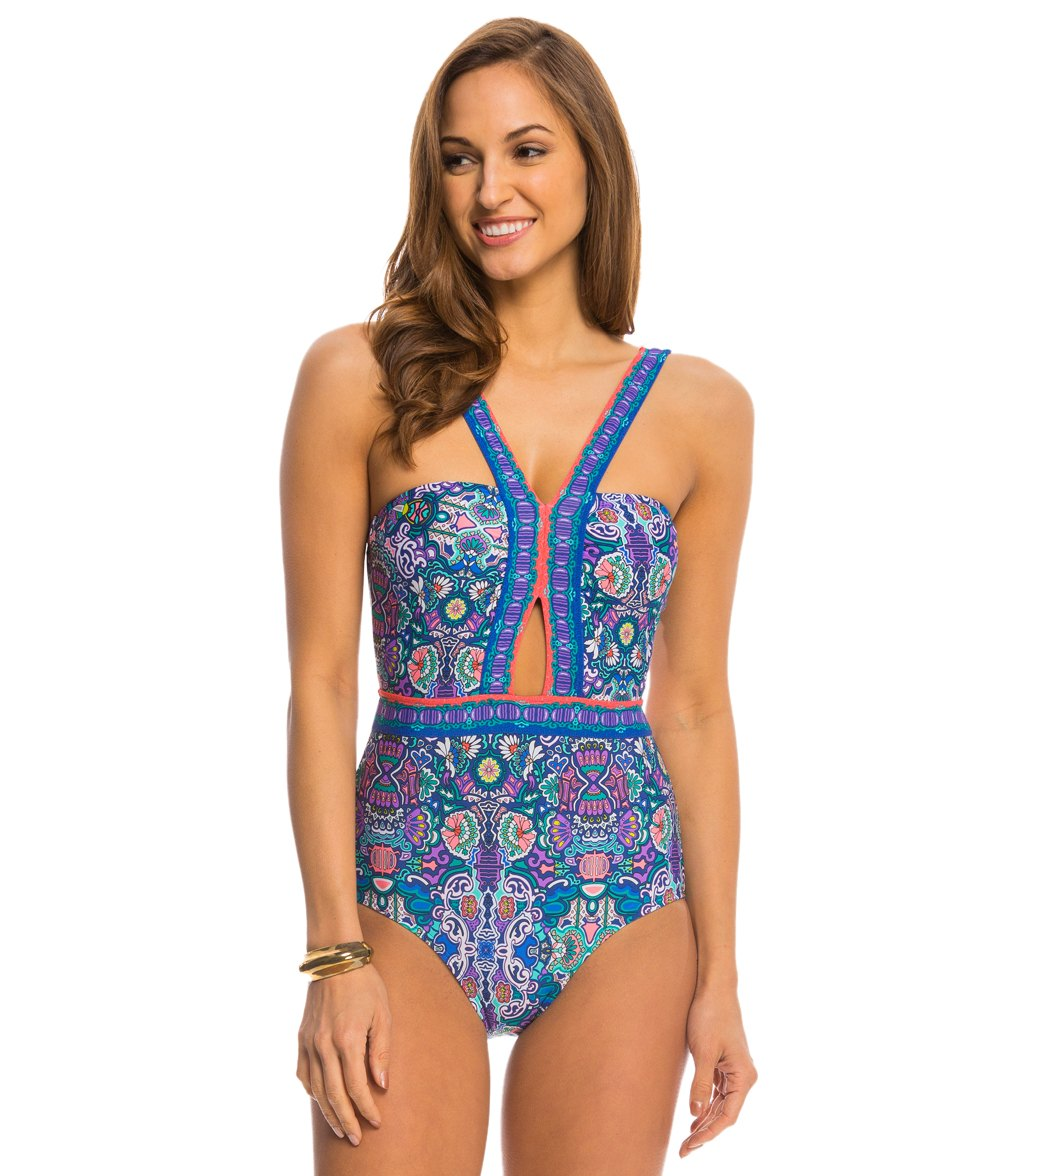 0ae402e56b ... Pretty Partridge Cut Out One Piece Swimsuit. Play Video. MODEL  MEASUREMENTS